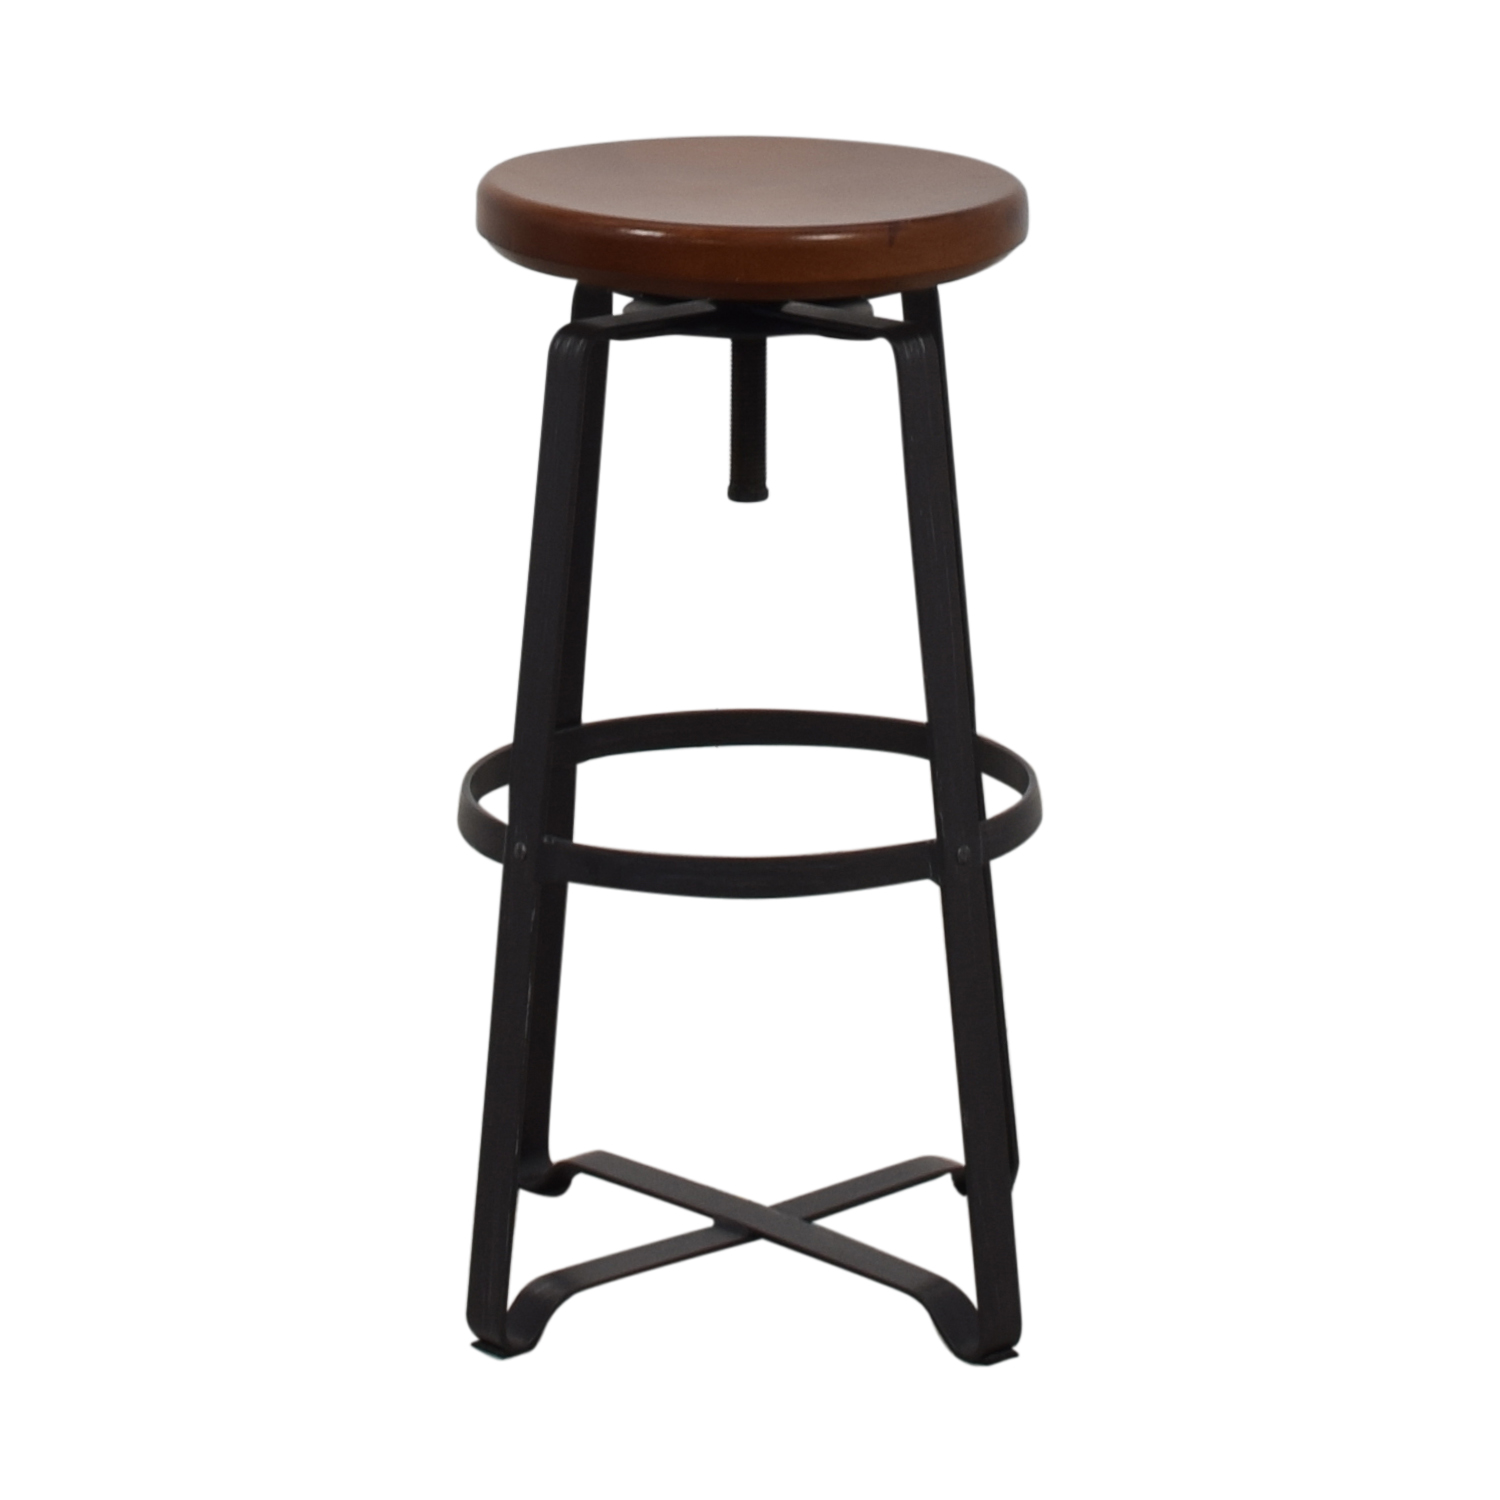 West Elm West Elm Adjustable Industrial Stool price